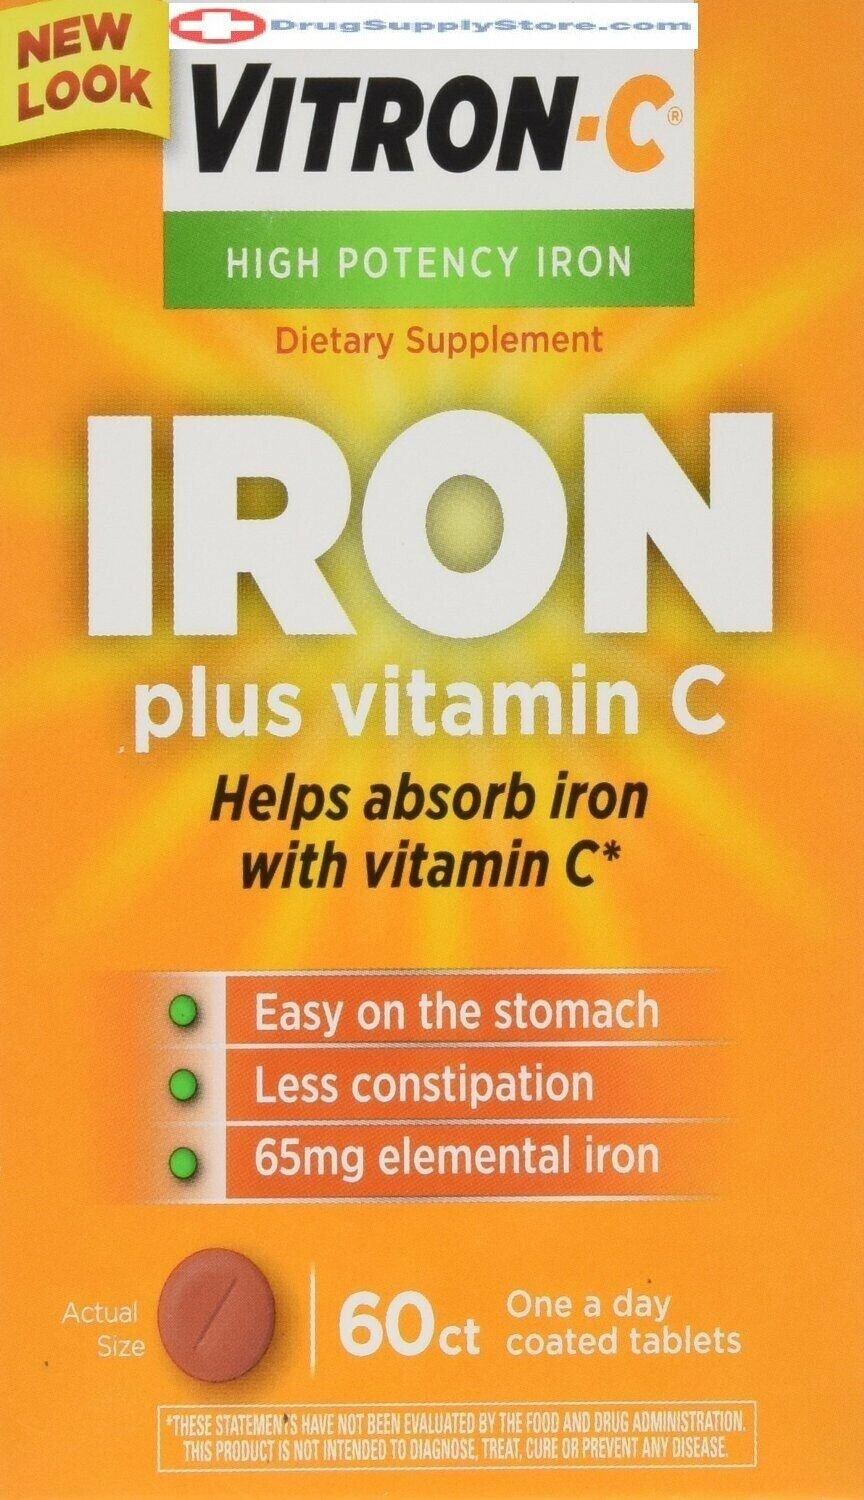 Vitron-C High Potency Iron Supplement with Vitamin C, 60 Cou